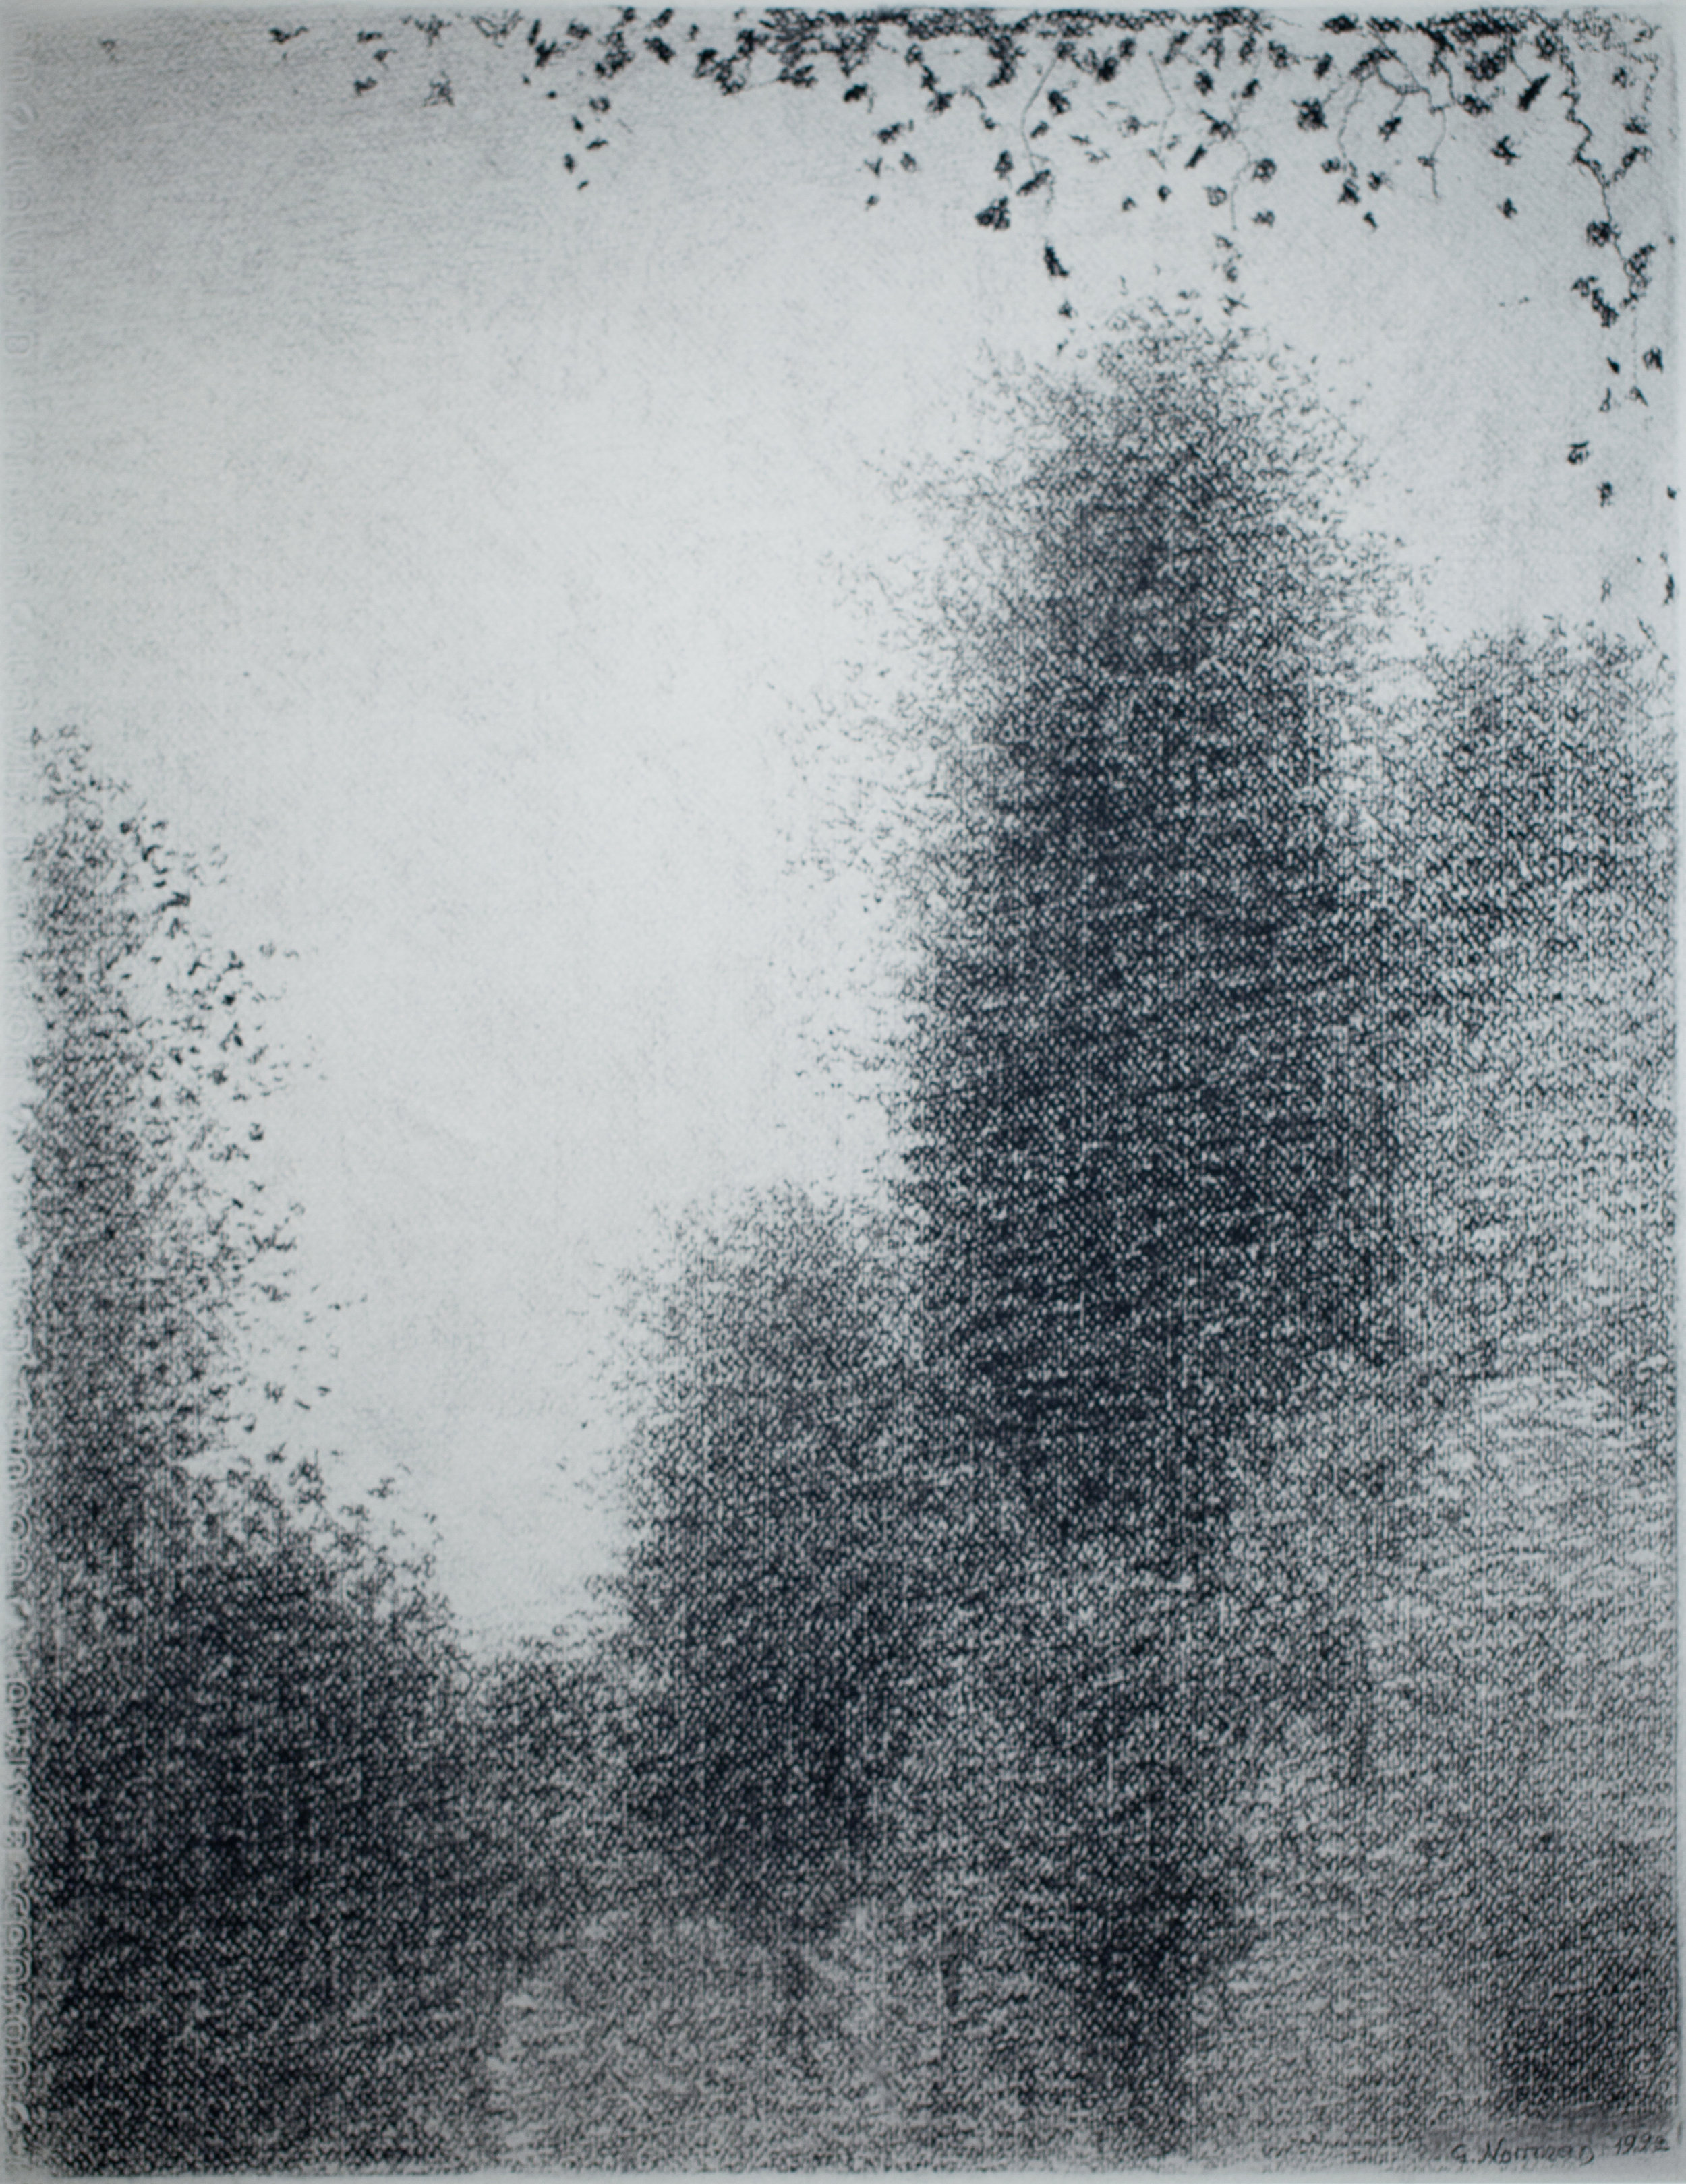 Gunnar Norrman I Parken (In the Park)  Charcoal 518.25 x 14""